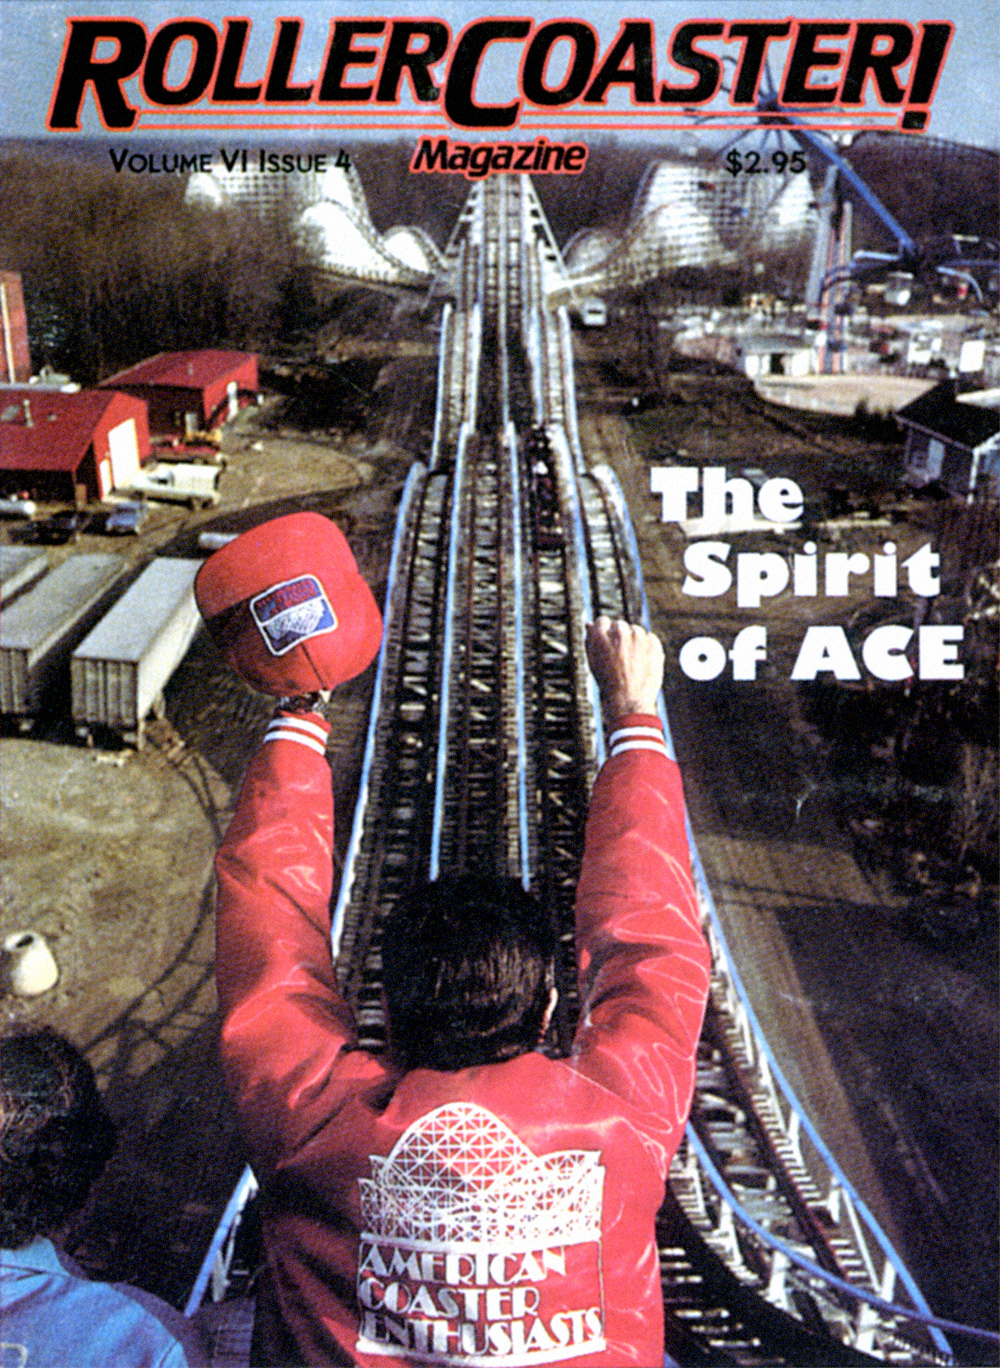 Rollercoaster!  quarterly, 1985.